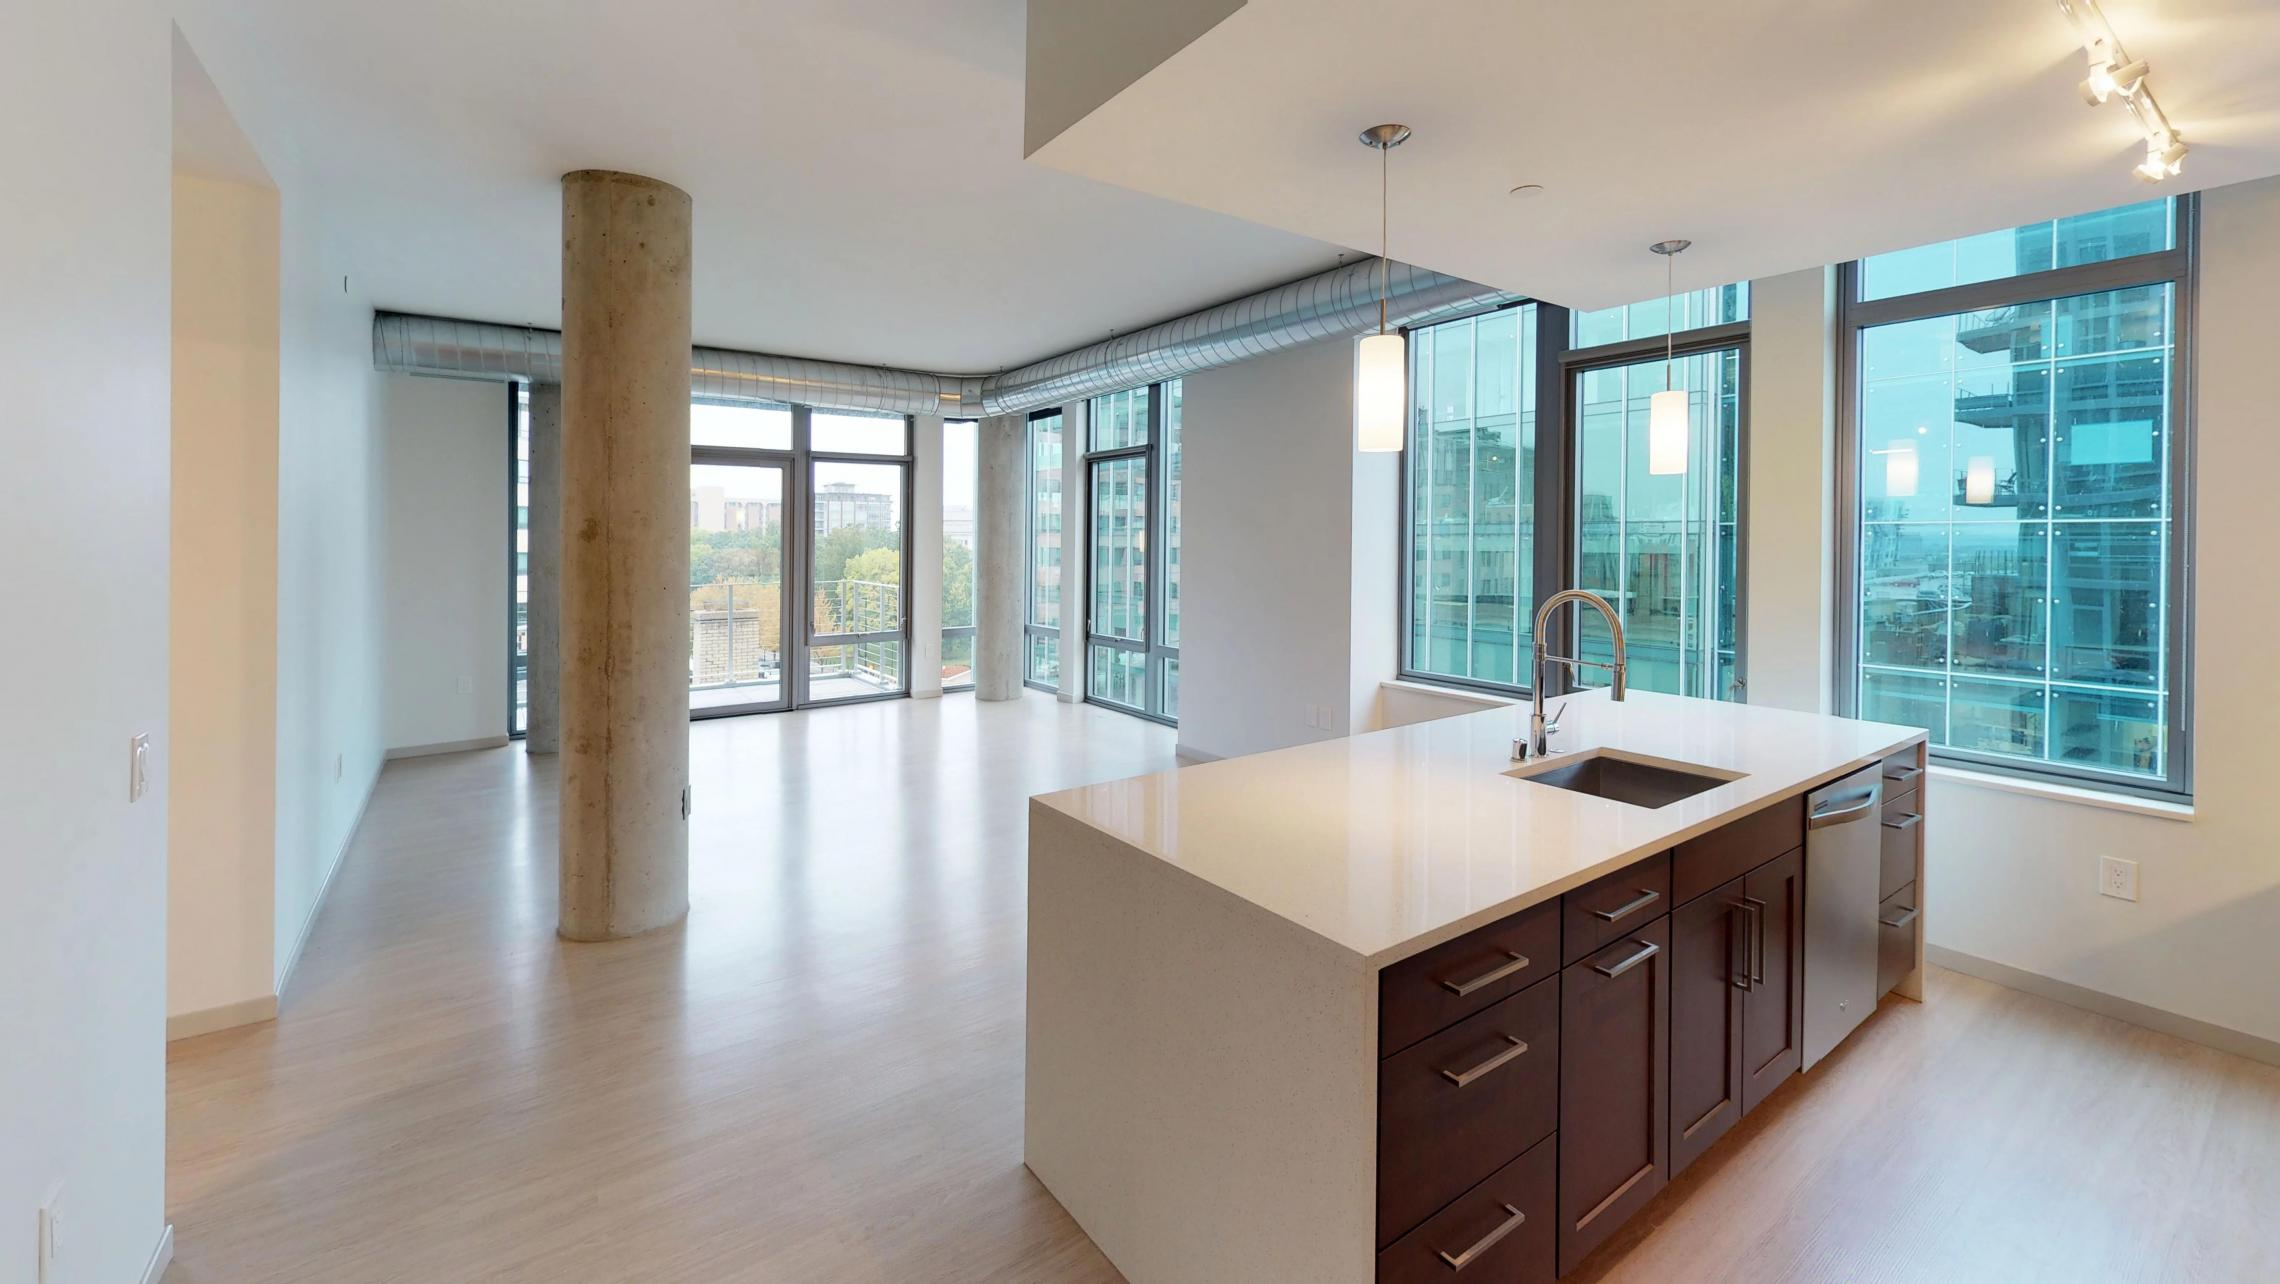 Pressman-601-Apartment-Two-Bedroom-Downtown-Madison-Upscale-Luxury-Modern-Corner-Balcony-Capitol-Lake-View